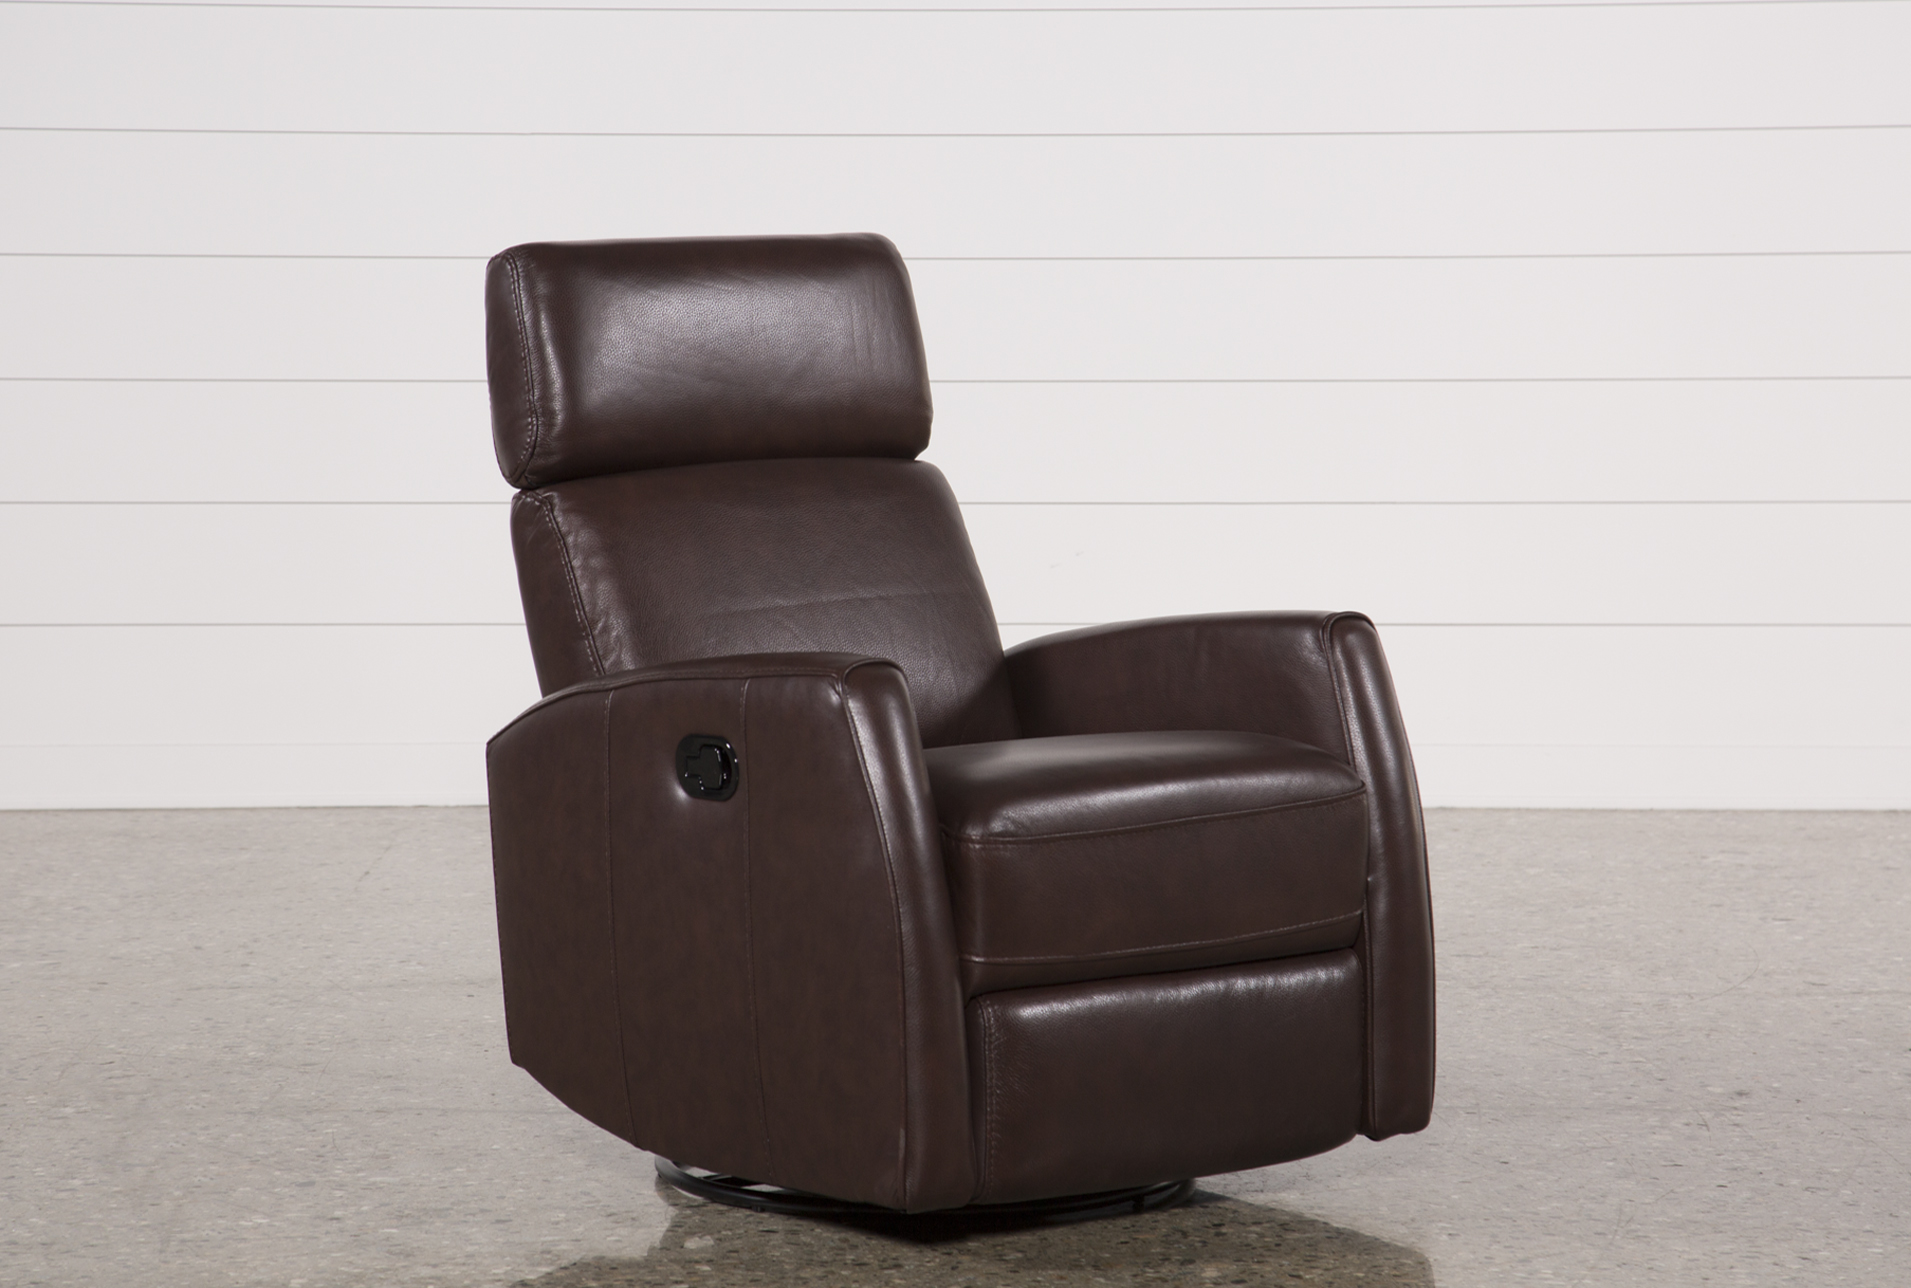 What Is a Swivel Glider Recliner? | Living Spaces